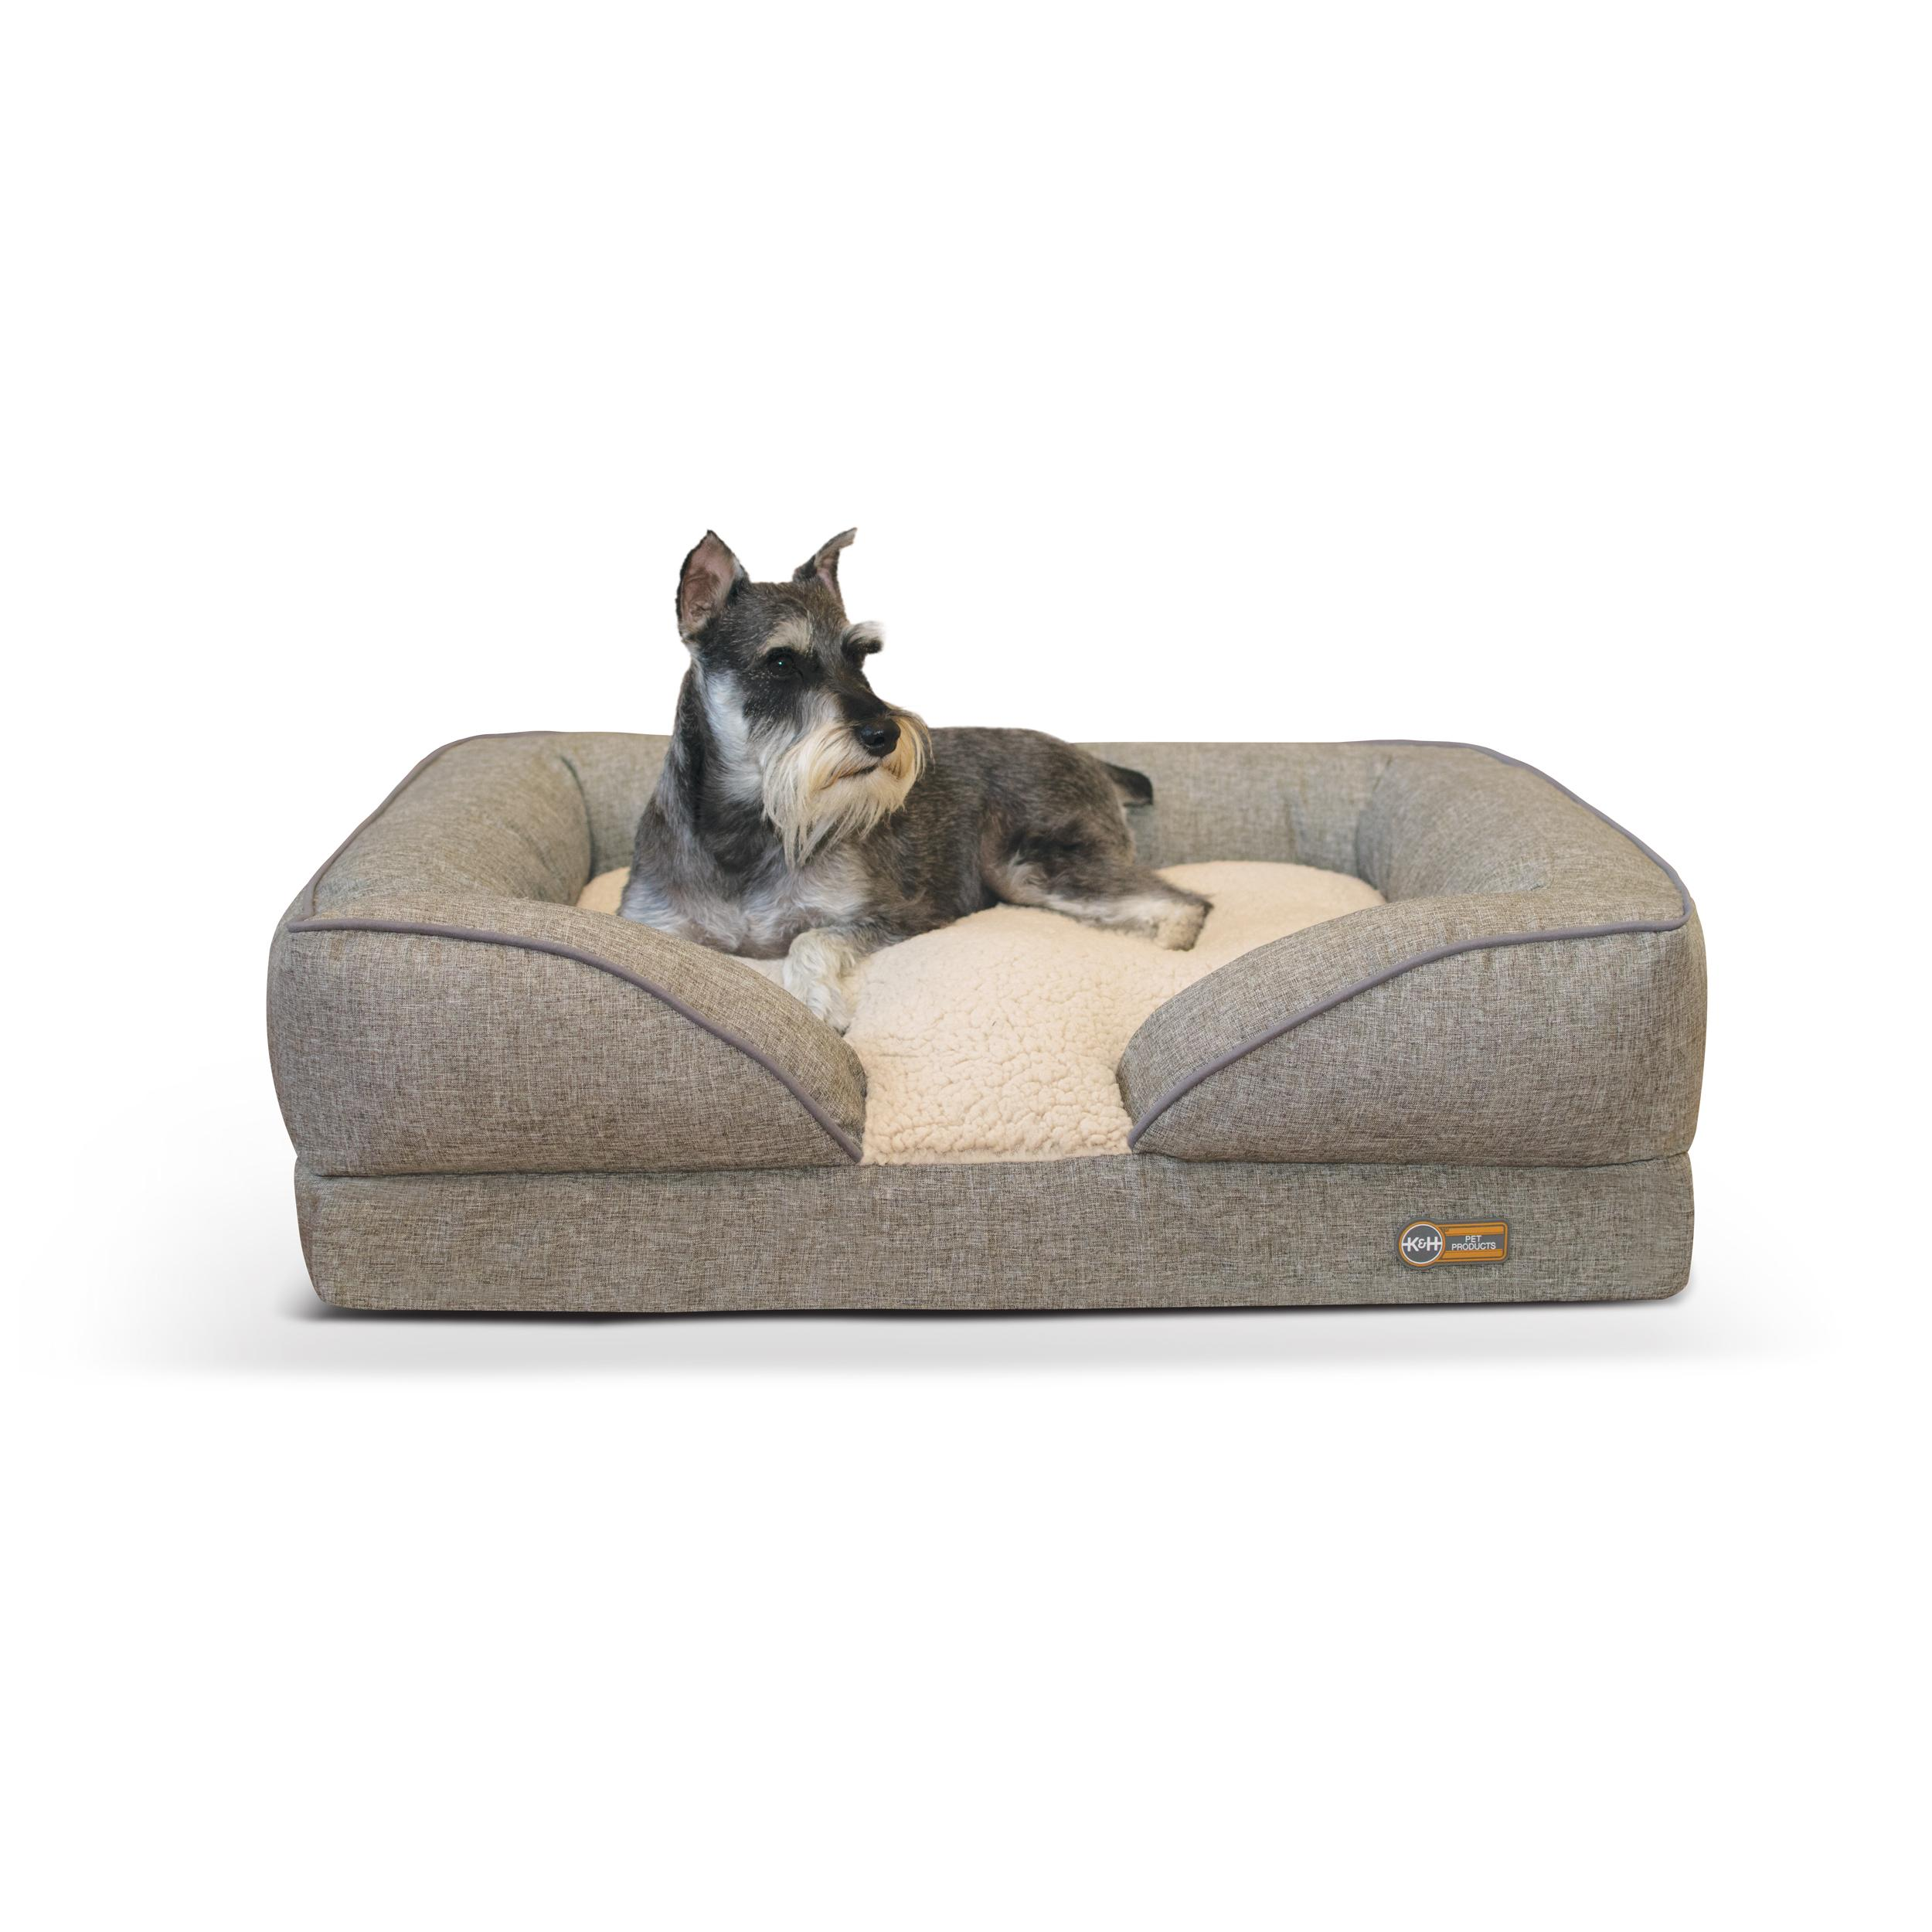 Amazon.com : K&H Pet Products Pillow-Top Orthopedic